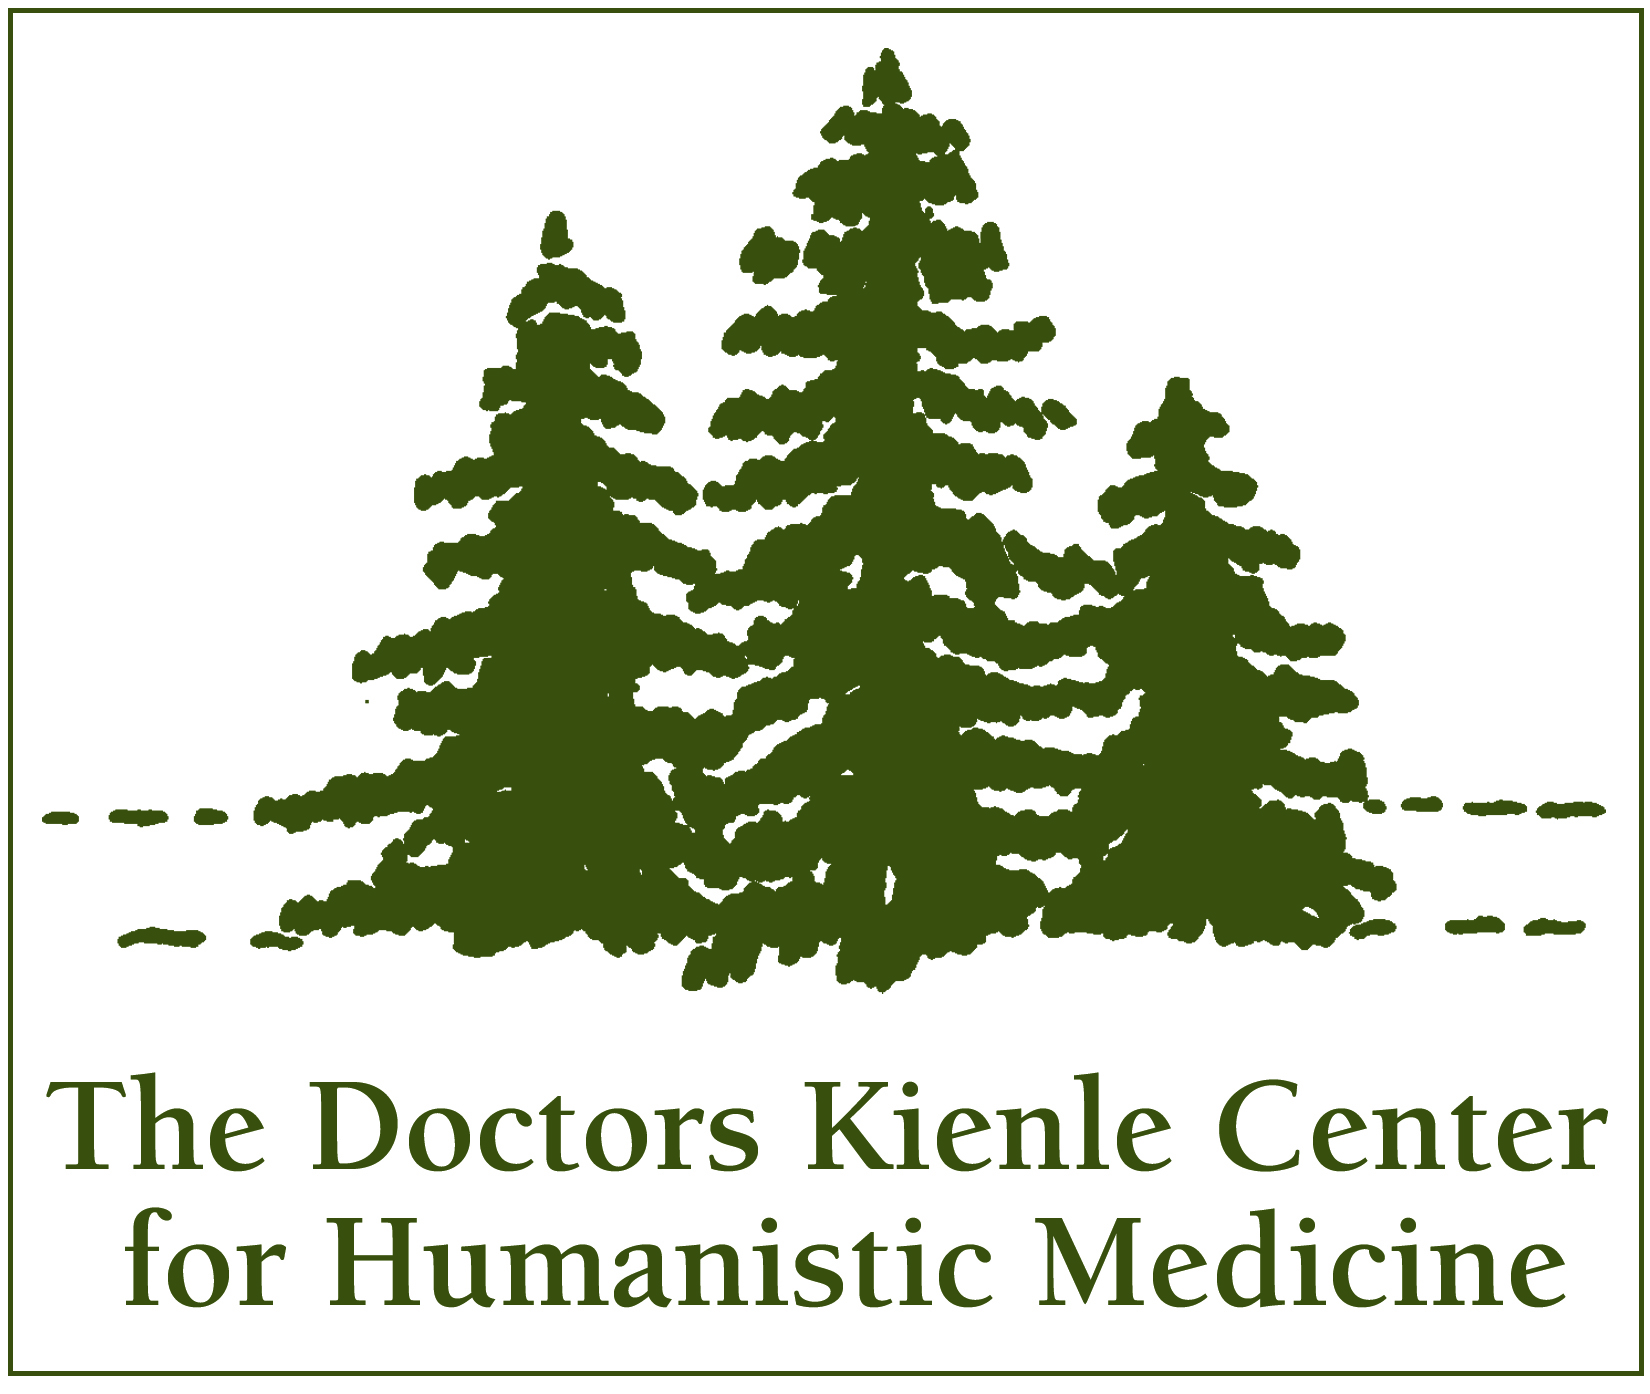 The Doctors Kienle for Humanistic Medicine logo